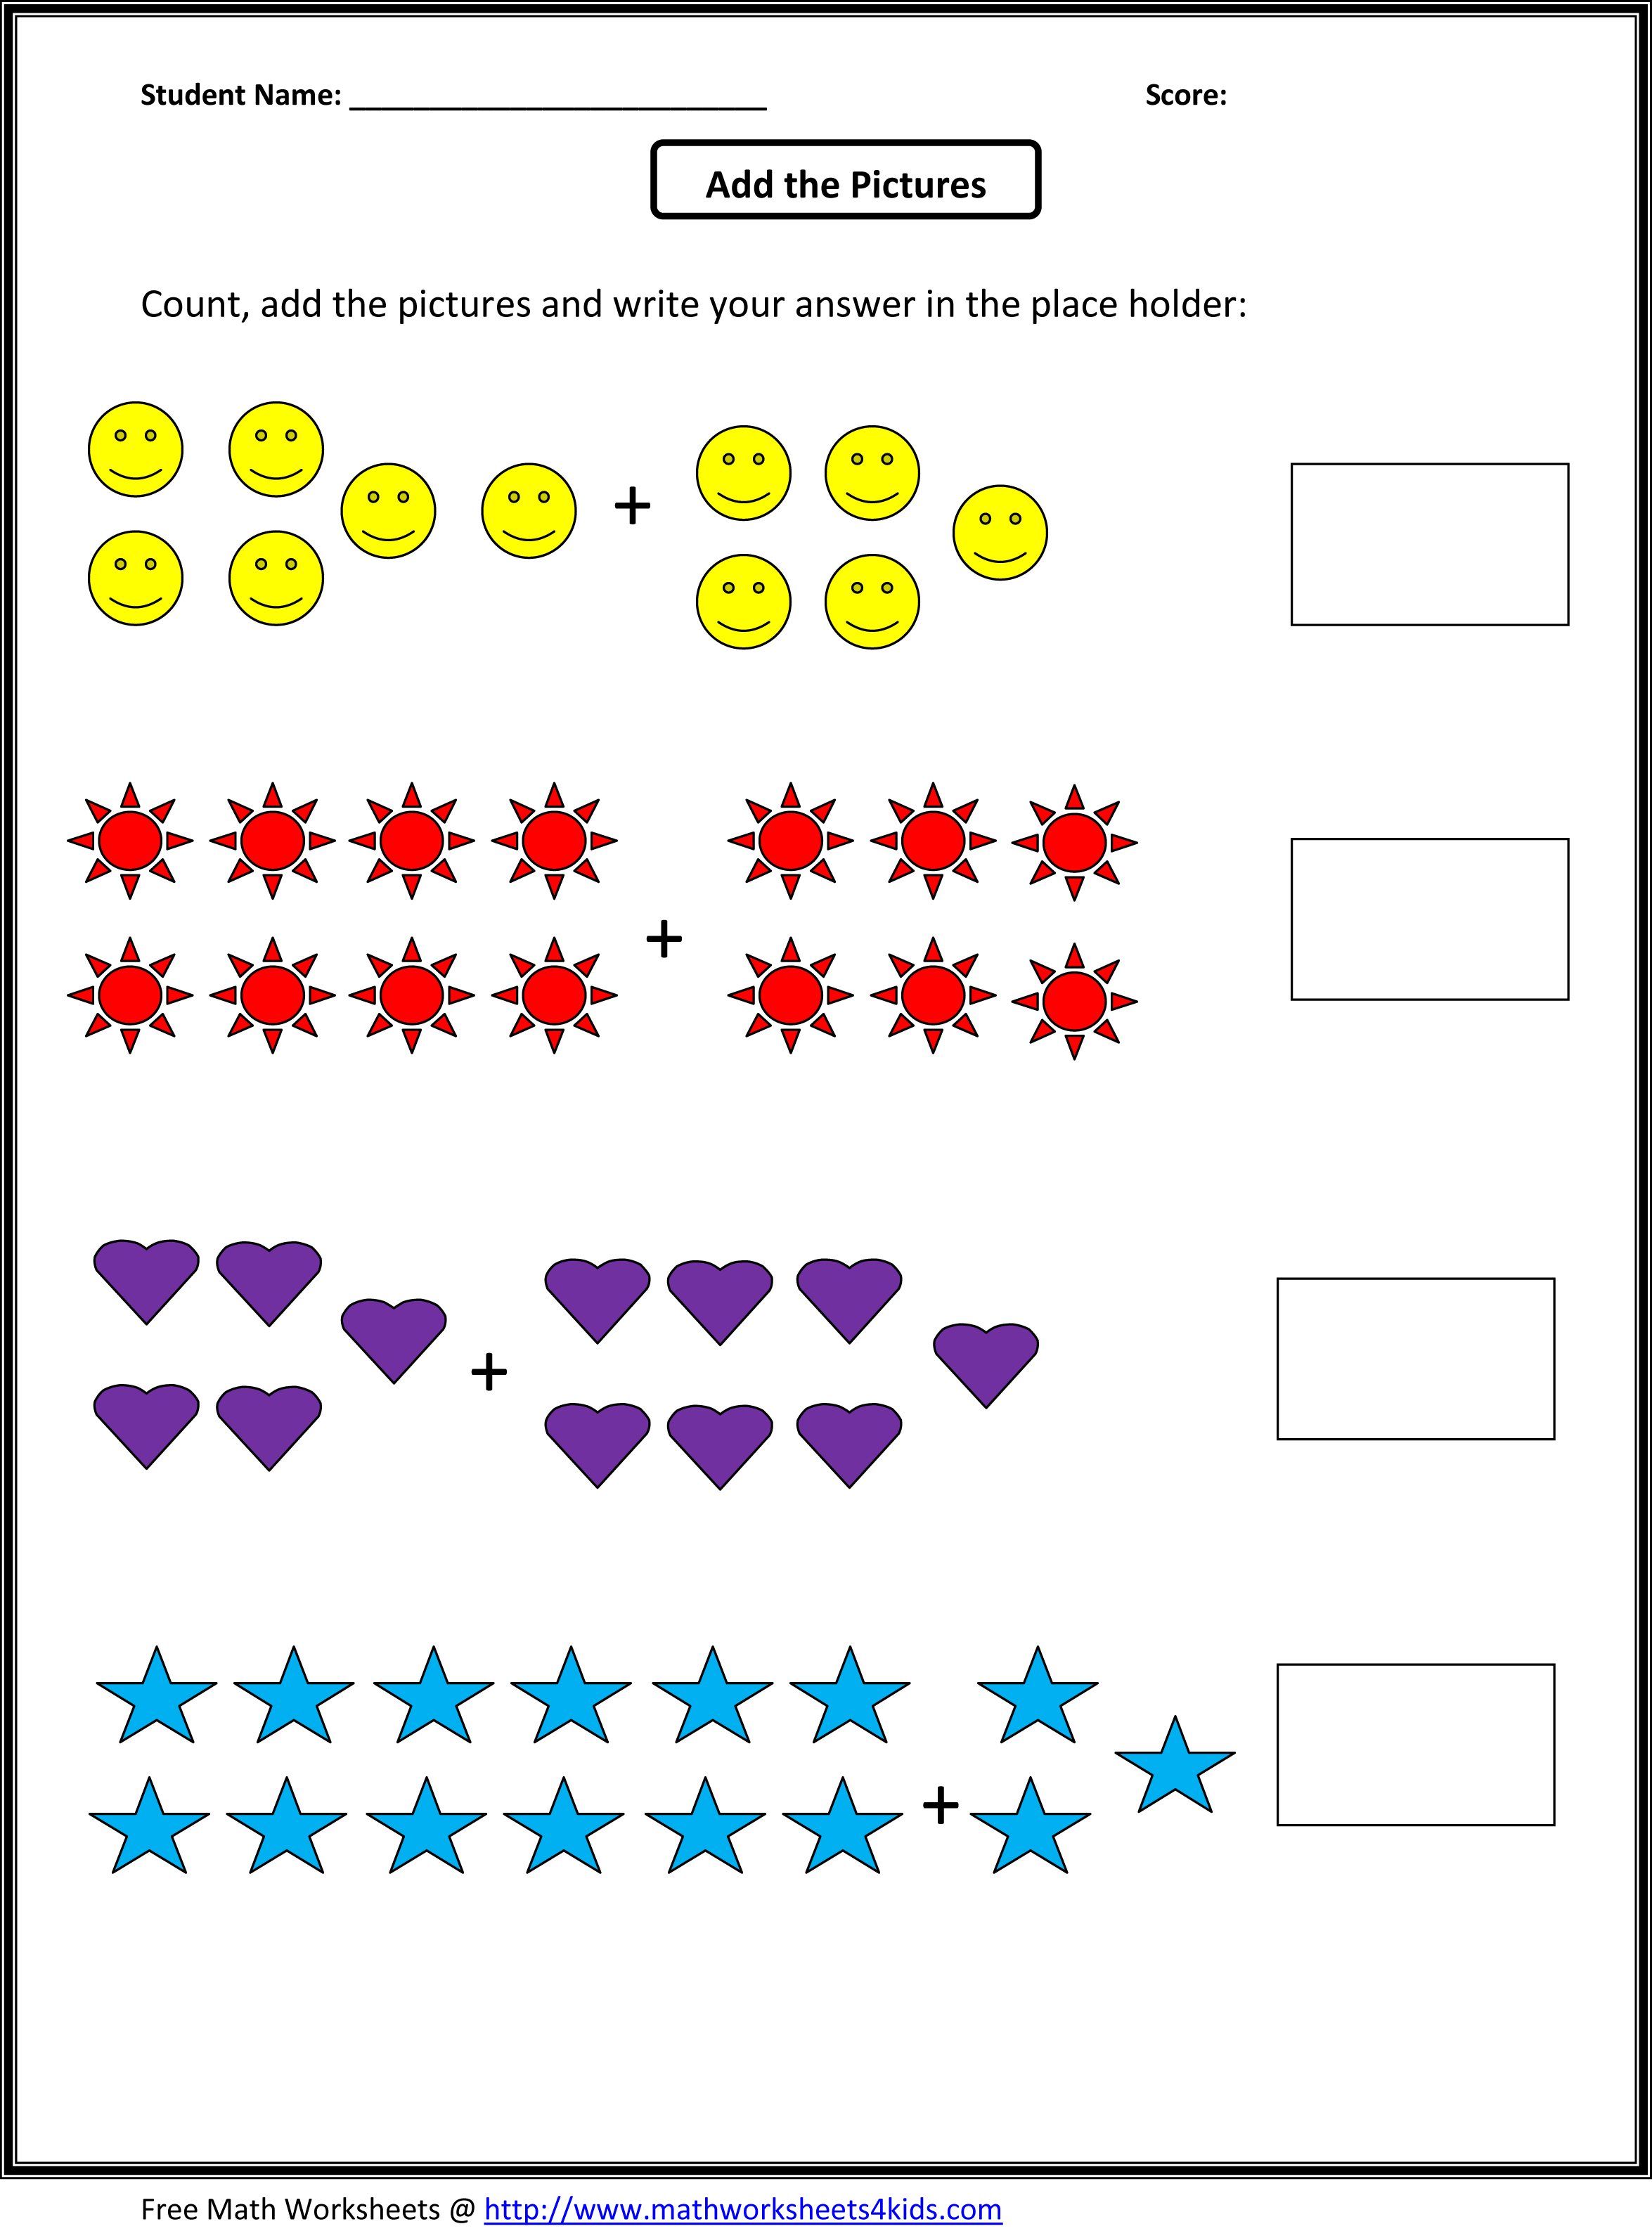 Weirdmailus  Winsome Grade  Maths Worksheet  Reocurent With Fascinating Math Worksheets For St Grade Free  Reocurent With Delightful Finding The Volume Worksheets Also Angles Math Worksheets In Addition D Nealian Writing Worksheets And Column Addition And Subtraction Worksheets Ks As Well As Free French Worksheets For Kids Additionally Angle Geometry Worksheet From Reocurentcom With Weirdmailus  Fascinating Grade  Maths Worksheet  Reocurent With Delightful Math Worksheets For St Grade Free  Reocurent And Winsome Finding The Volume Worksheets Also Angles Math Worksheets In Addition D Nealian Writing Worksheets From Reocurentcom